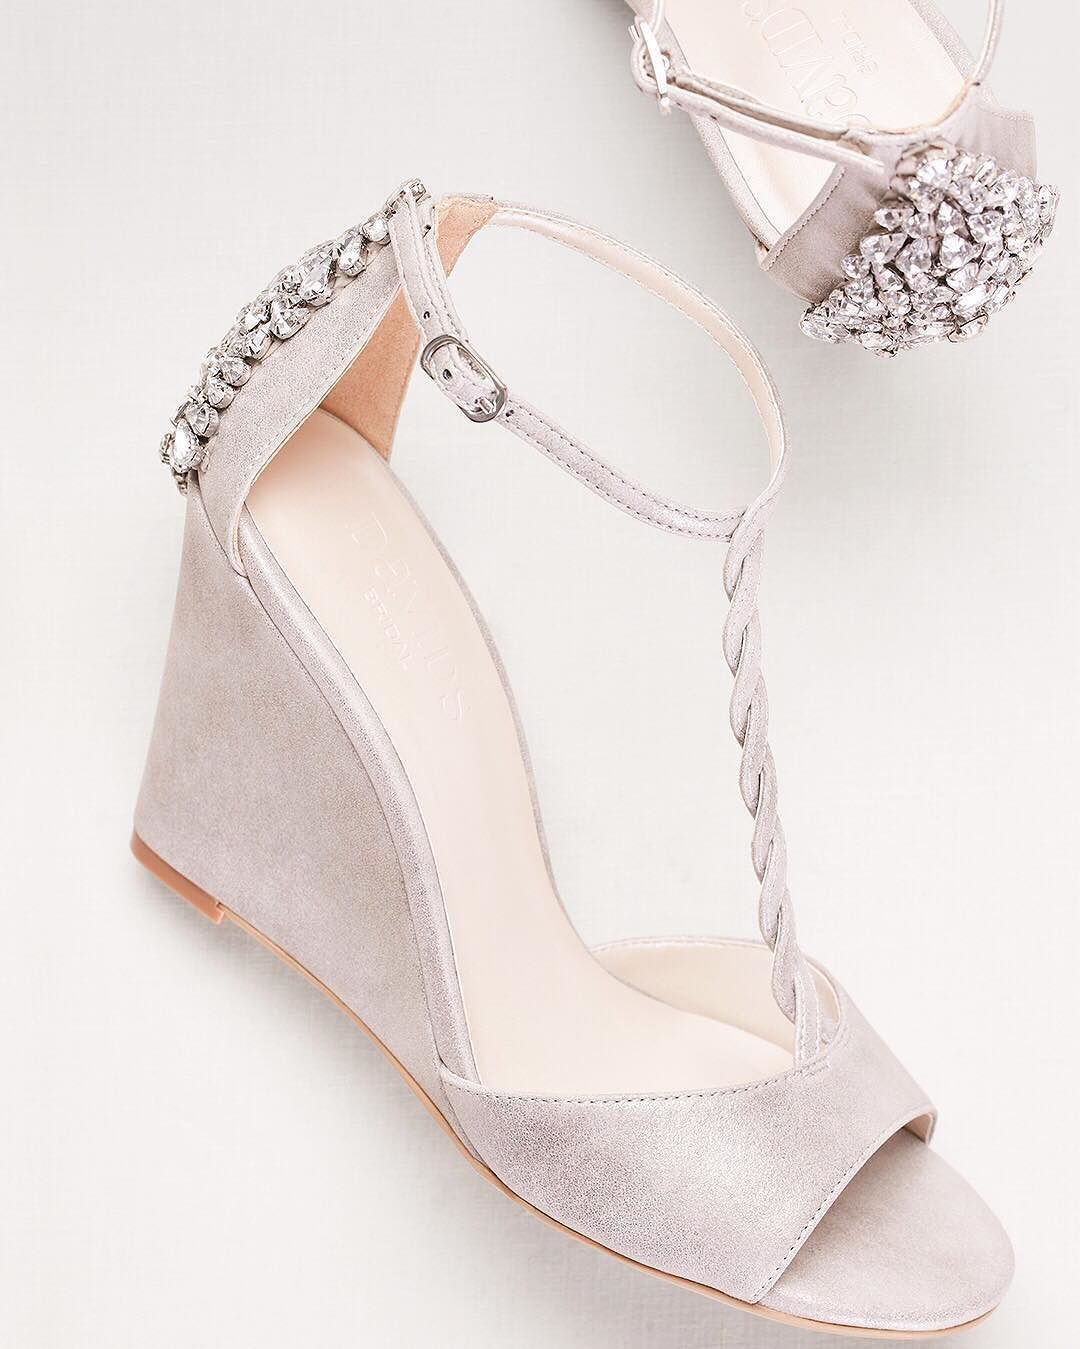 A Chic Wedge Is Perfect For Every Wedding Event Braided Details